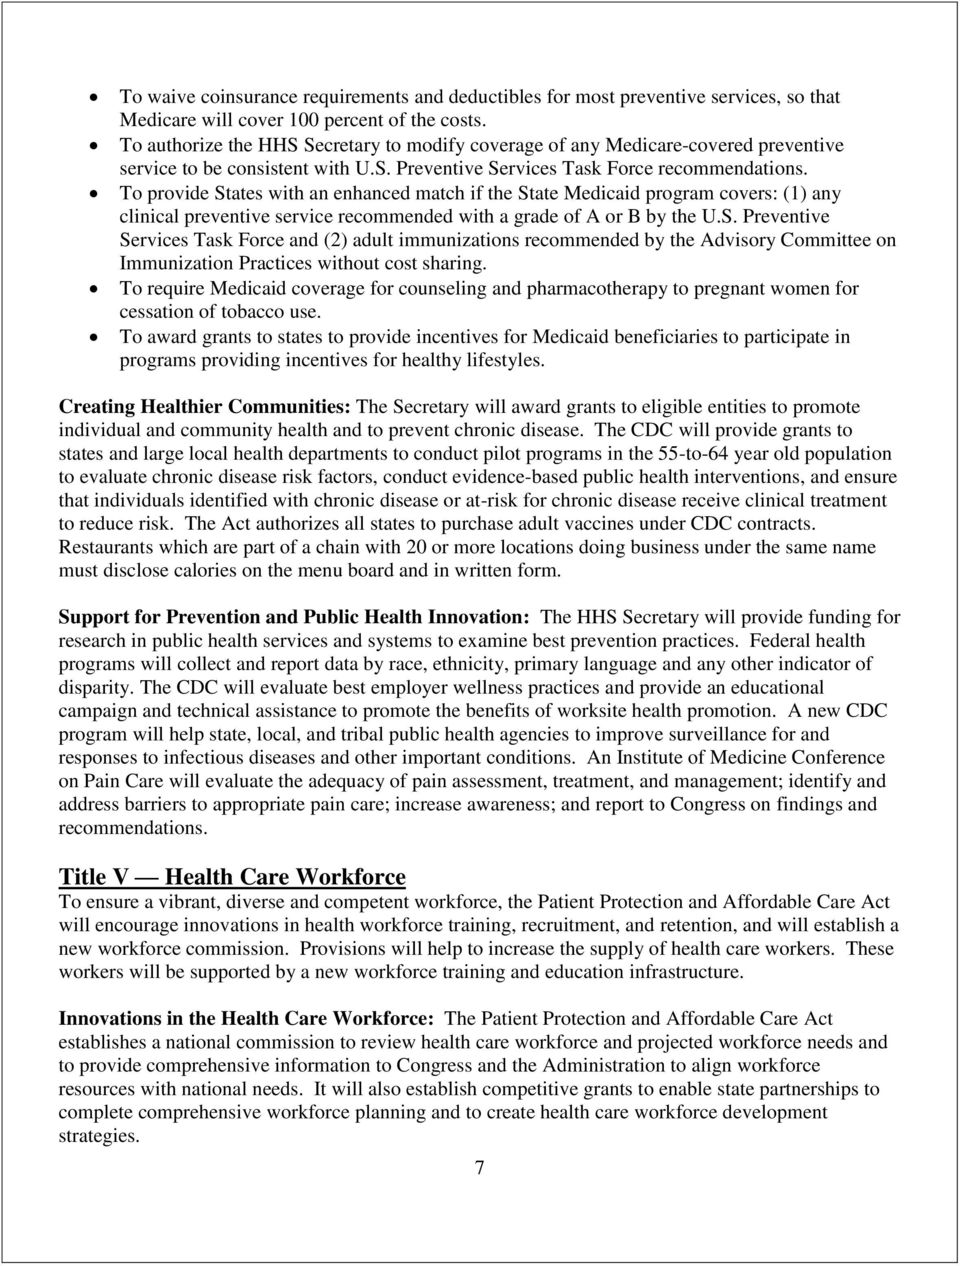 To provide States with an enhanced match if the State Medicaid program covers: (1) any clinical preventive service recommended with a grade of A or B by the U.S. Preventive Services Task Force and (2) adult immunizations recommended by the Advisory Committee on Immunization Practices without cost sharing.